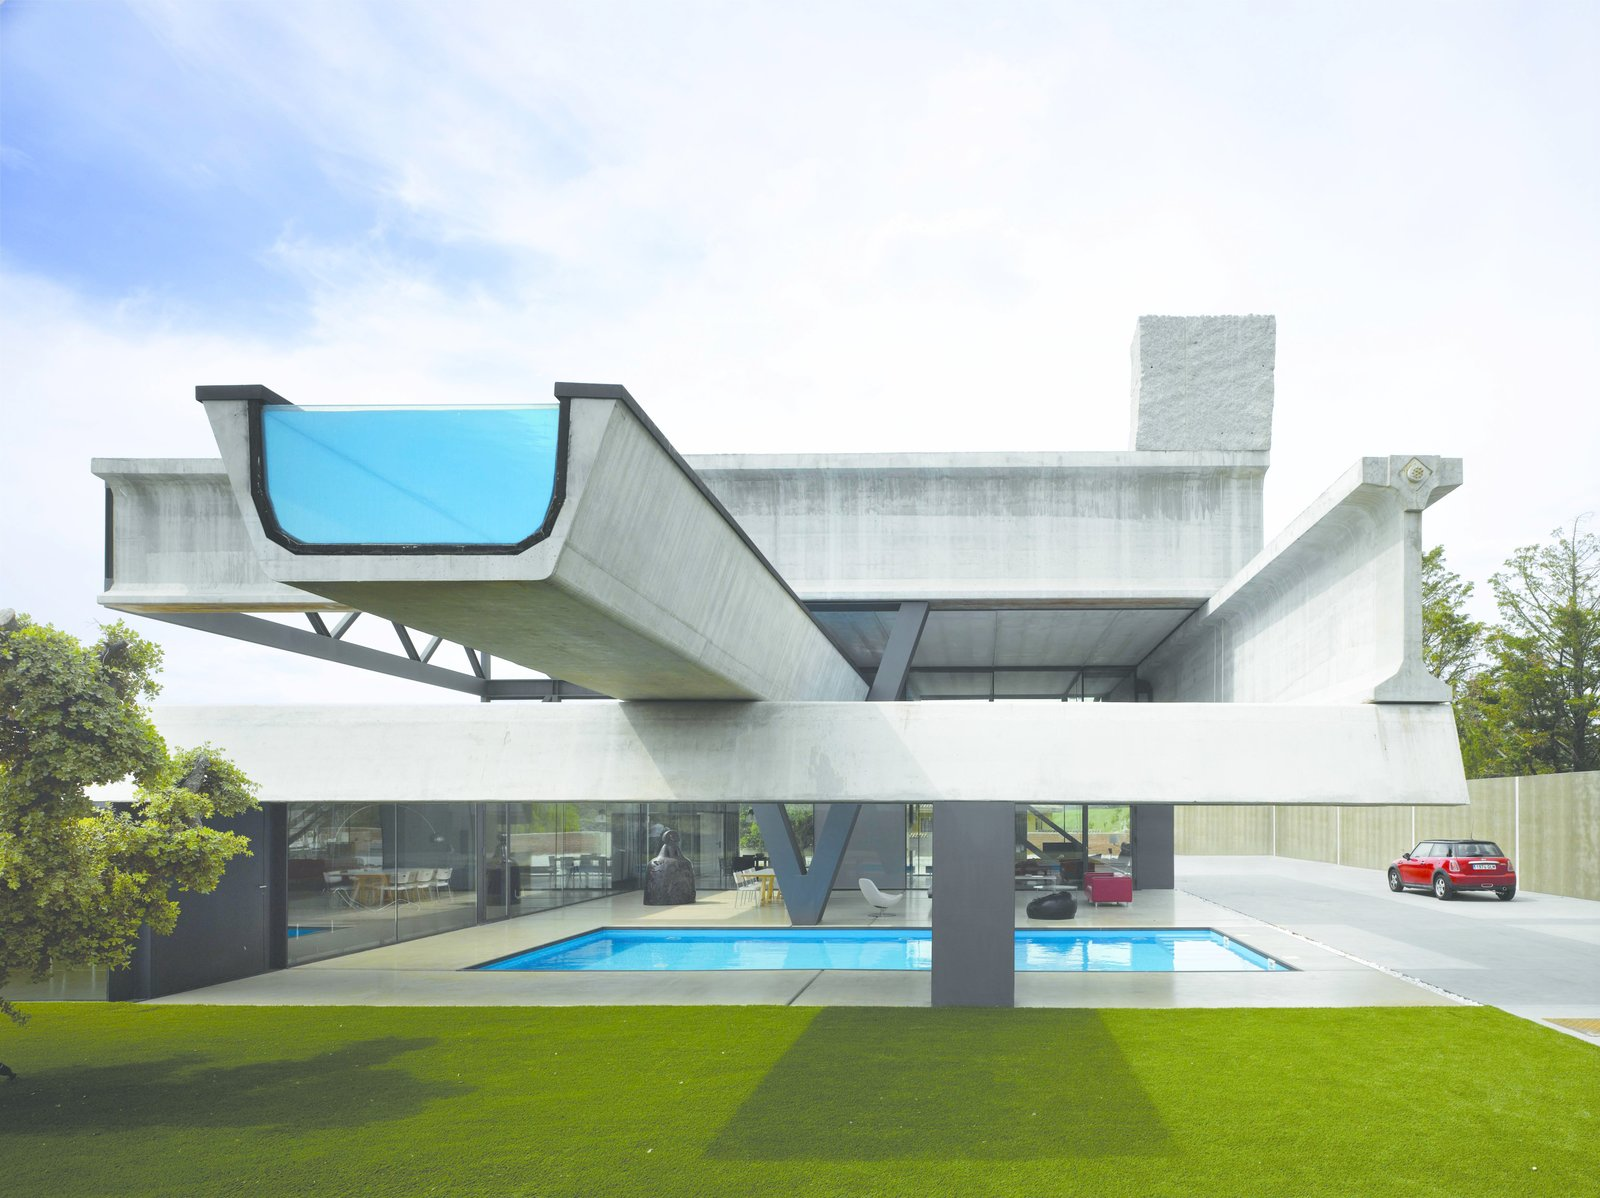 Outdoor, Swimming Pools, Tubs, Shower, Lap Pools, Tubs, Shower, Concrete Patio, Porch, Deck, Back Yard, and Grass Precast concrete beams typically used for highways are repurposed in the creative Hemeroscopium House by Ensamble Studio in Madrid.  Photo 11 of 11 in 10 Works of Architecture That Reveal the Acrobatic Wonders of Concrete from Truly Imaginative Buildings Around the World